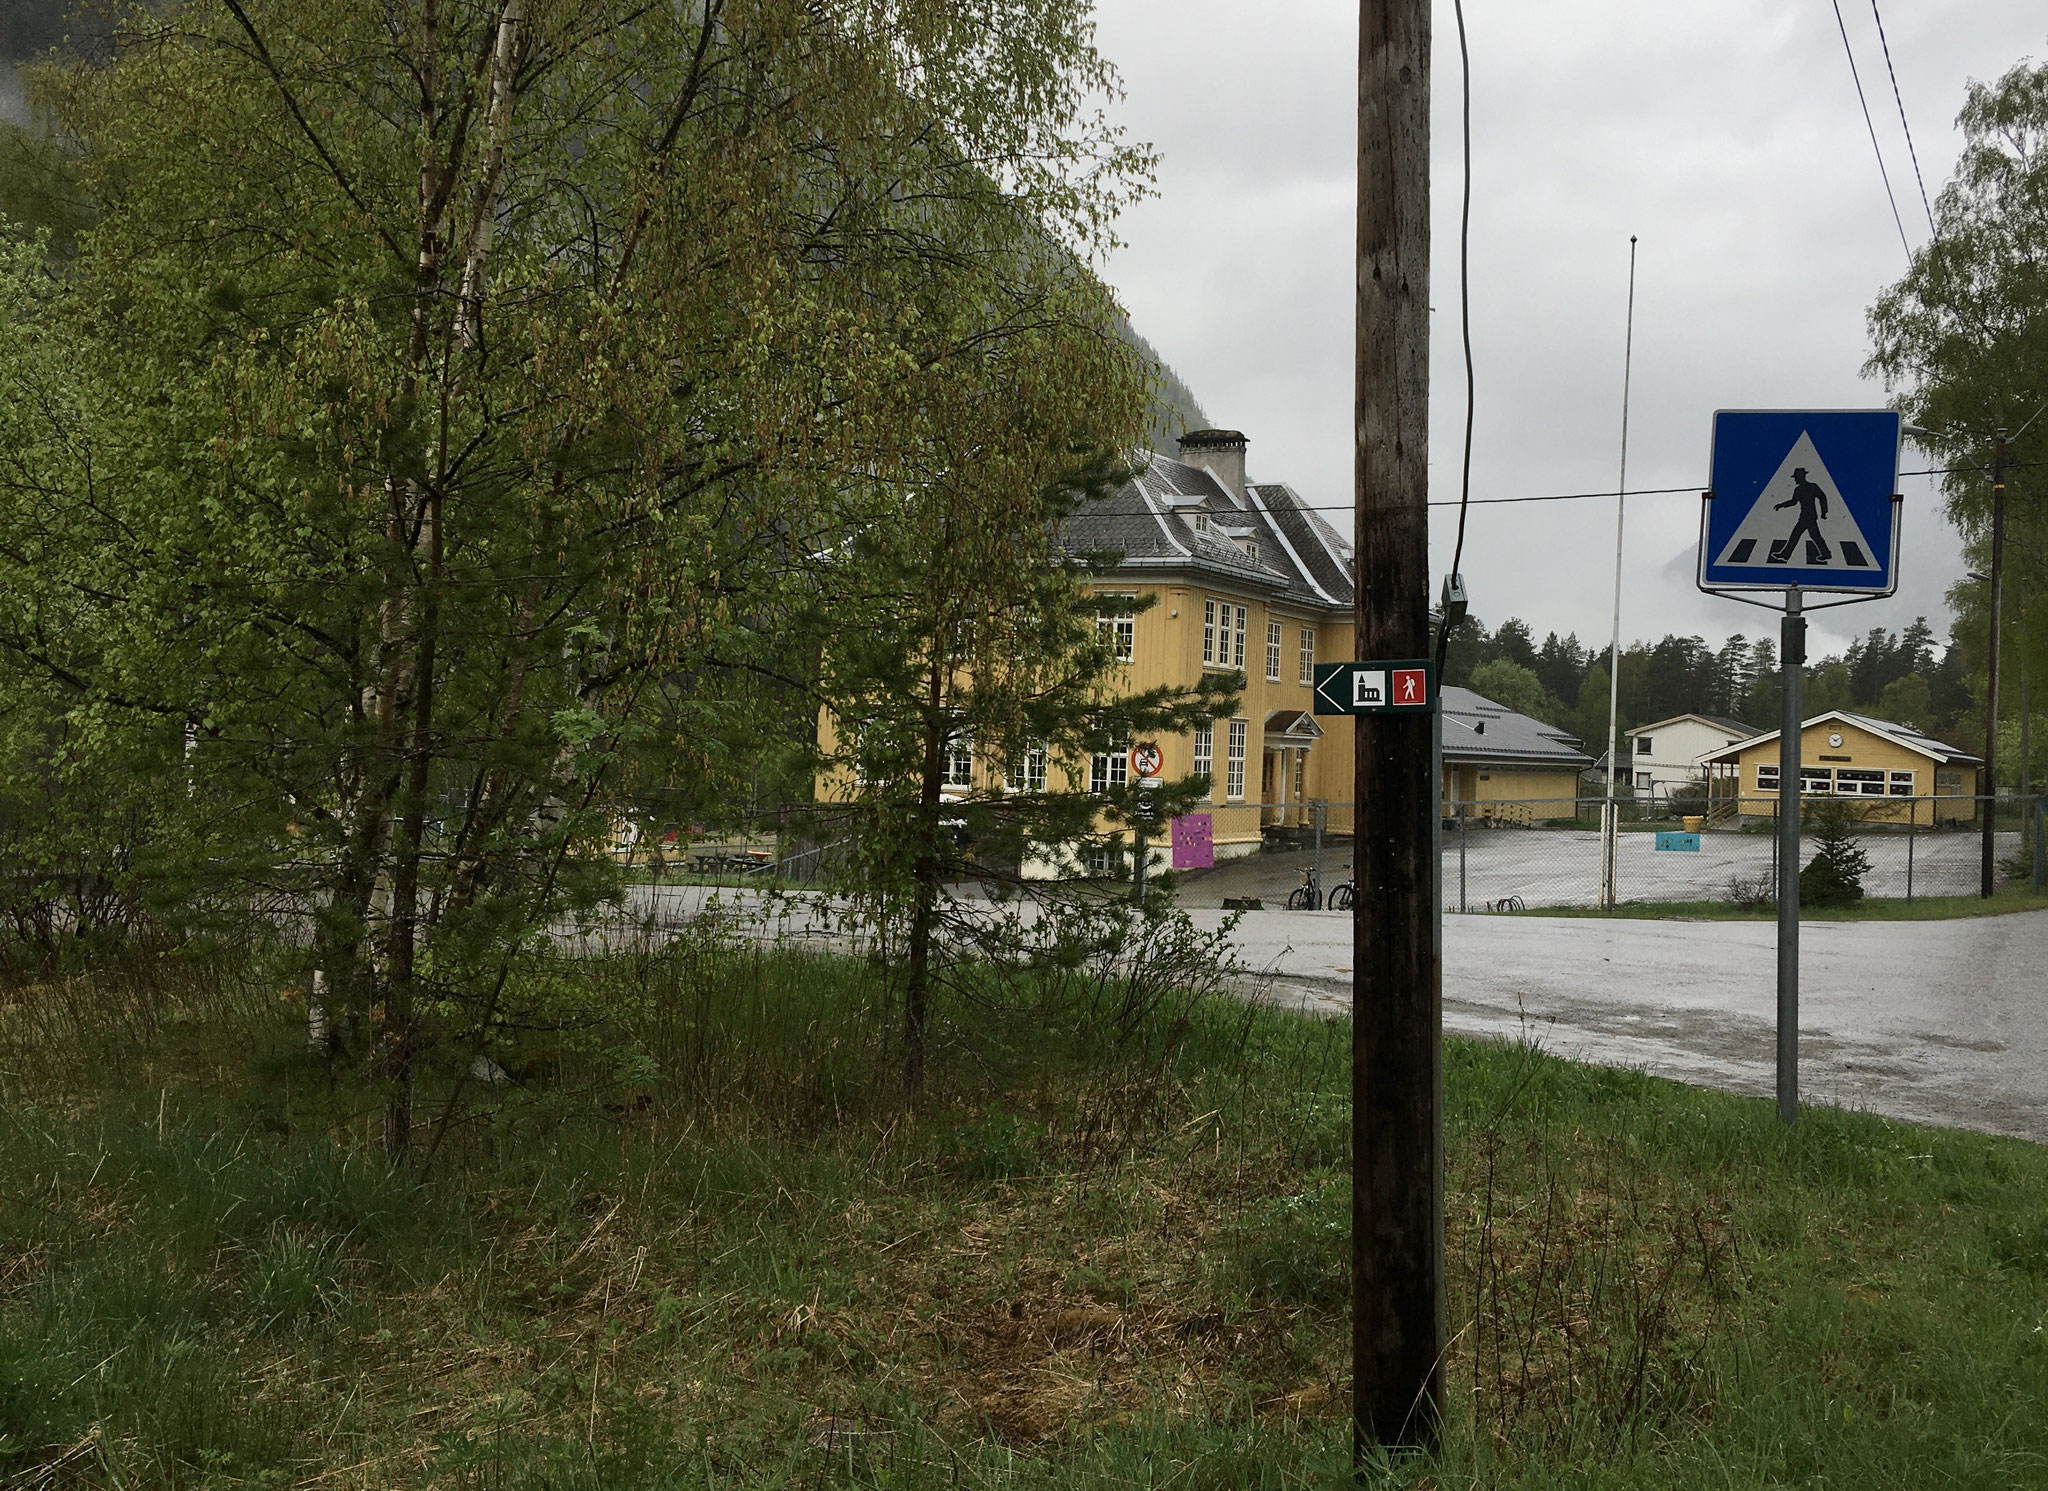 to the left in front of Mæl school